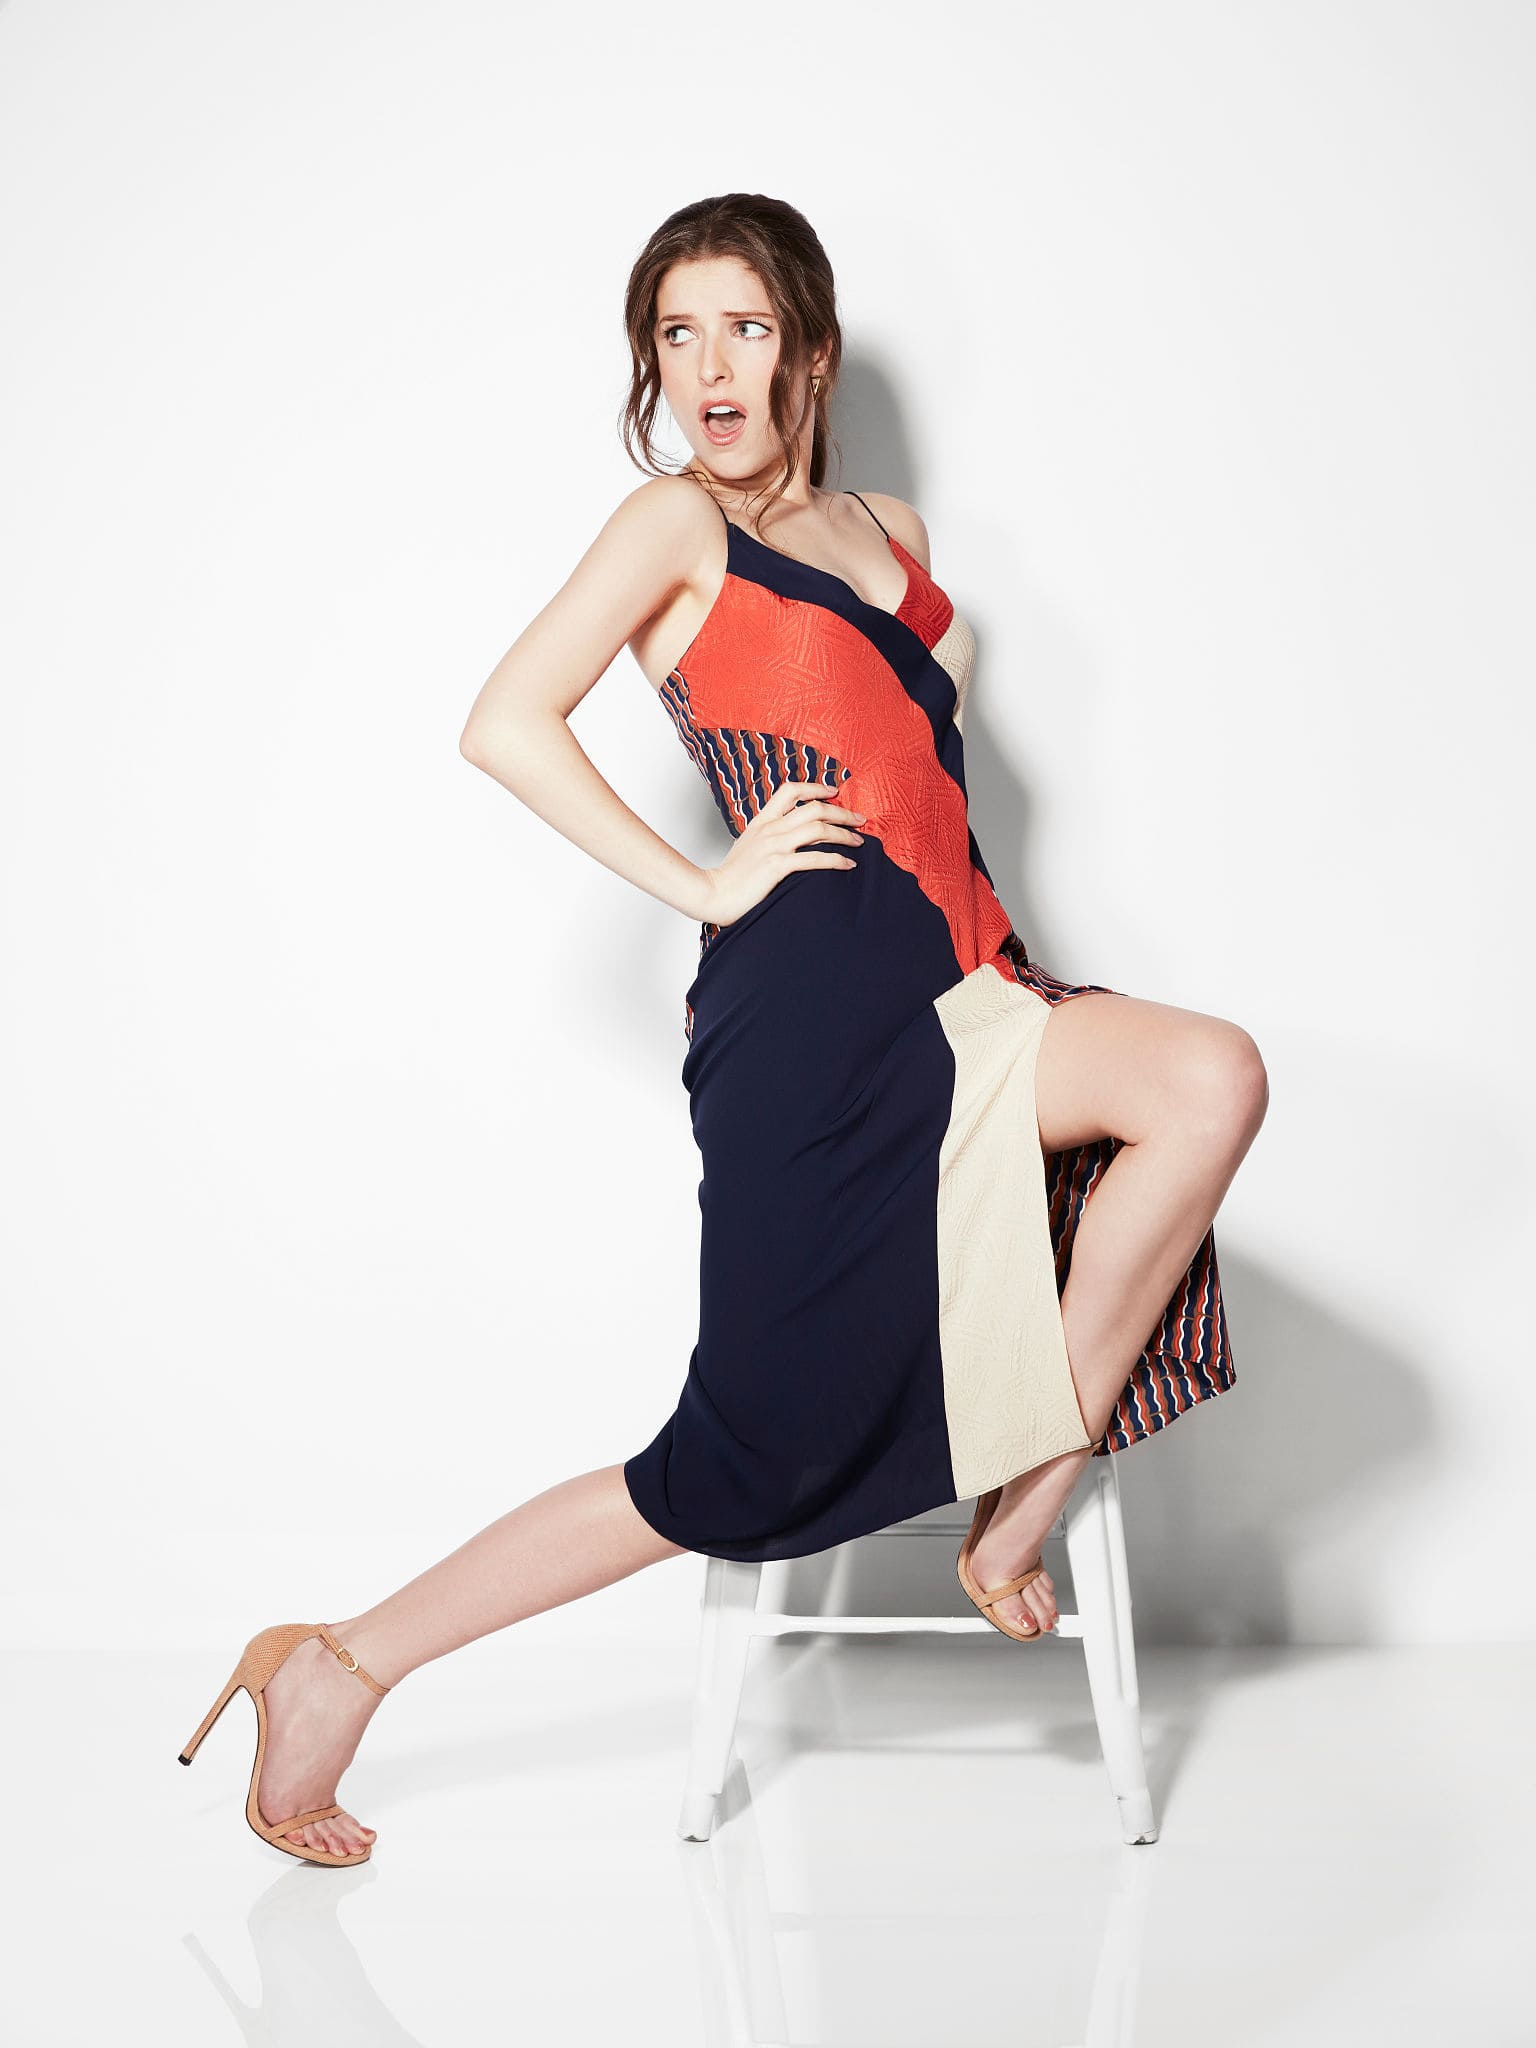 Anna Kendrick awesome pic